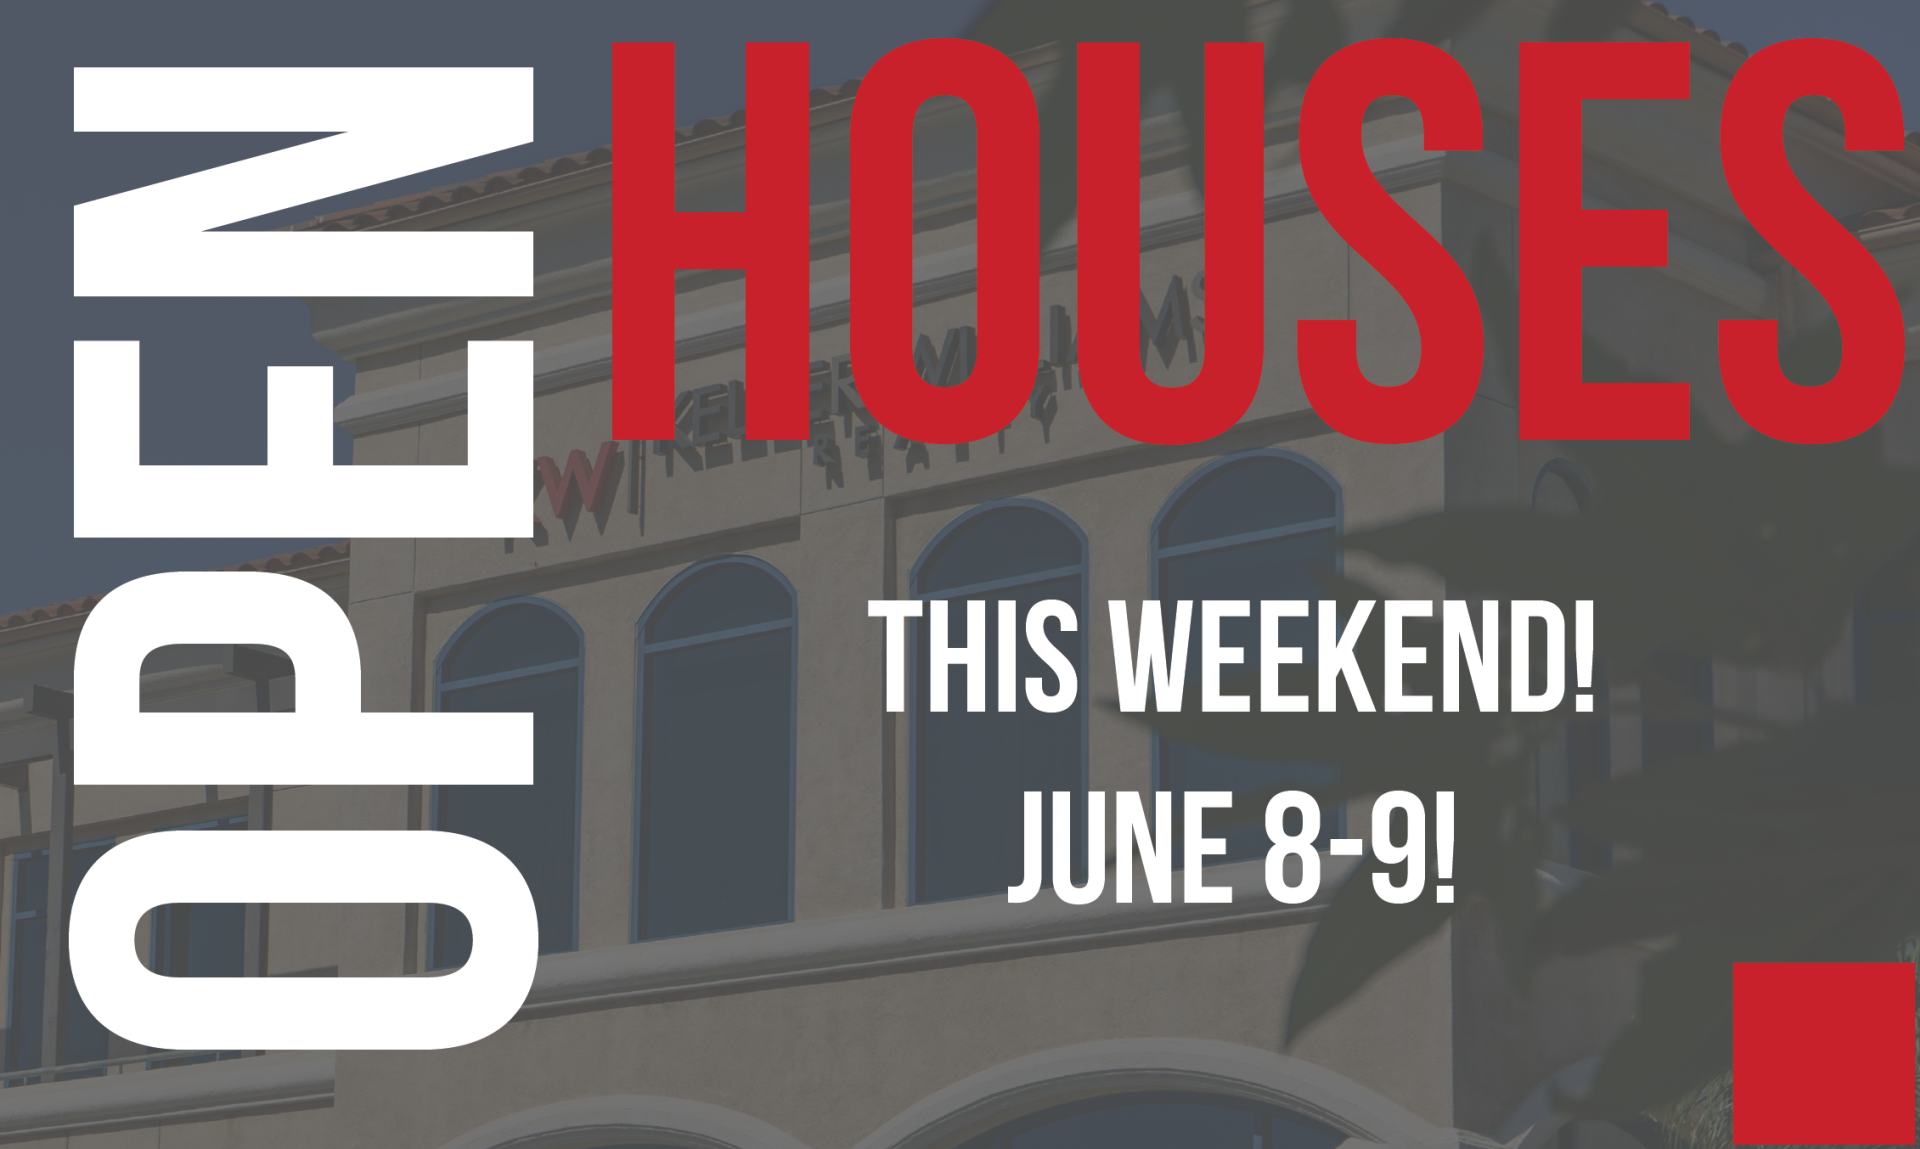 Open Houses This Weekend! June 8-9!